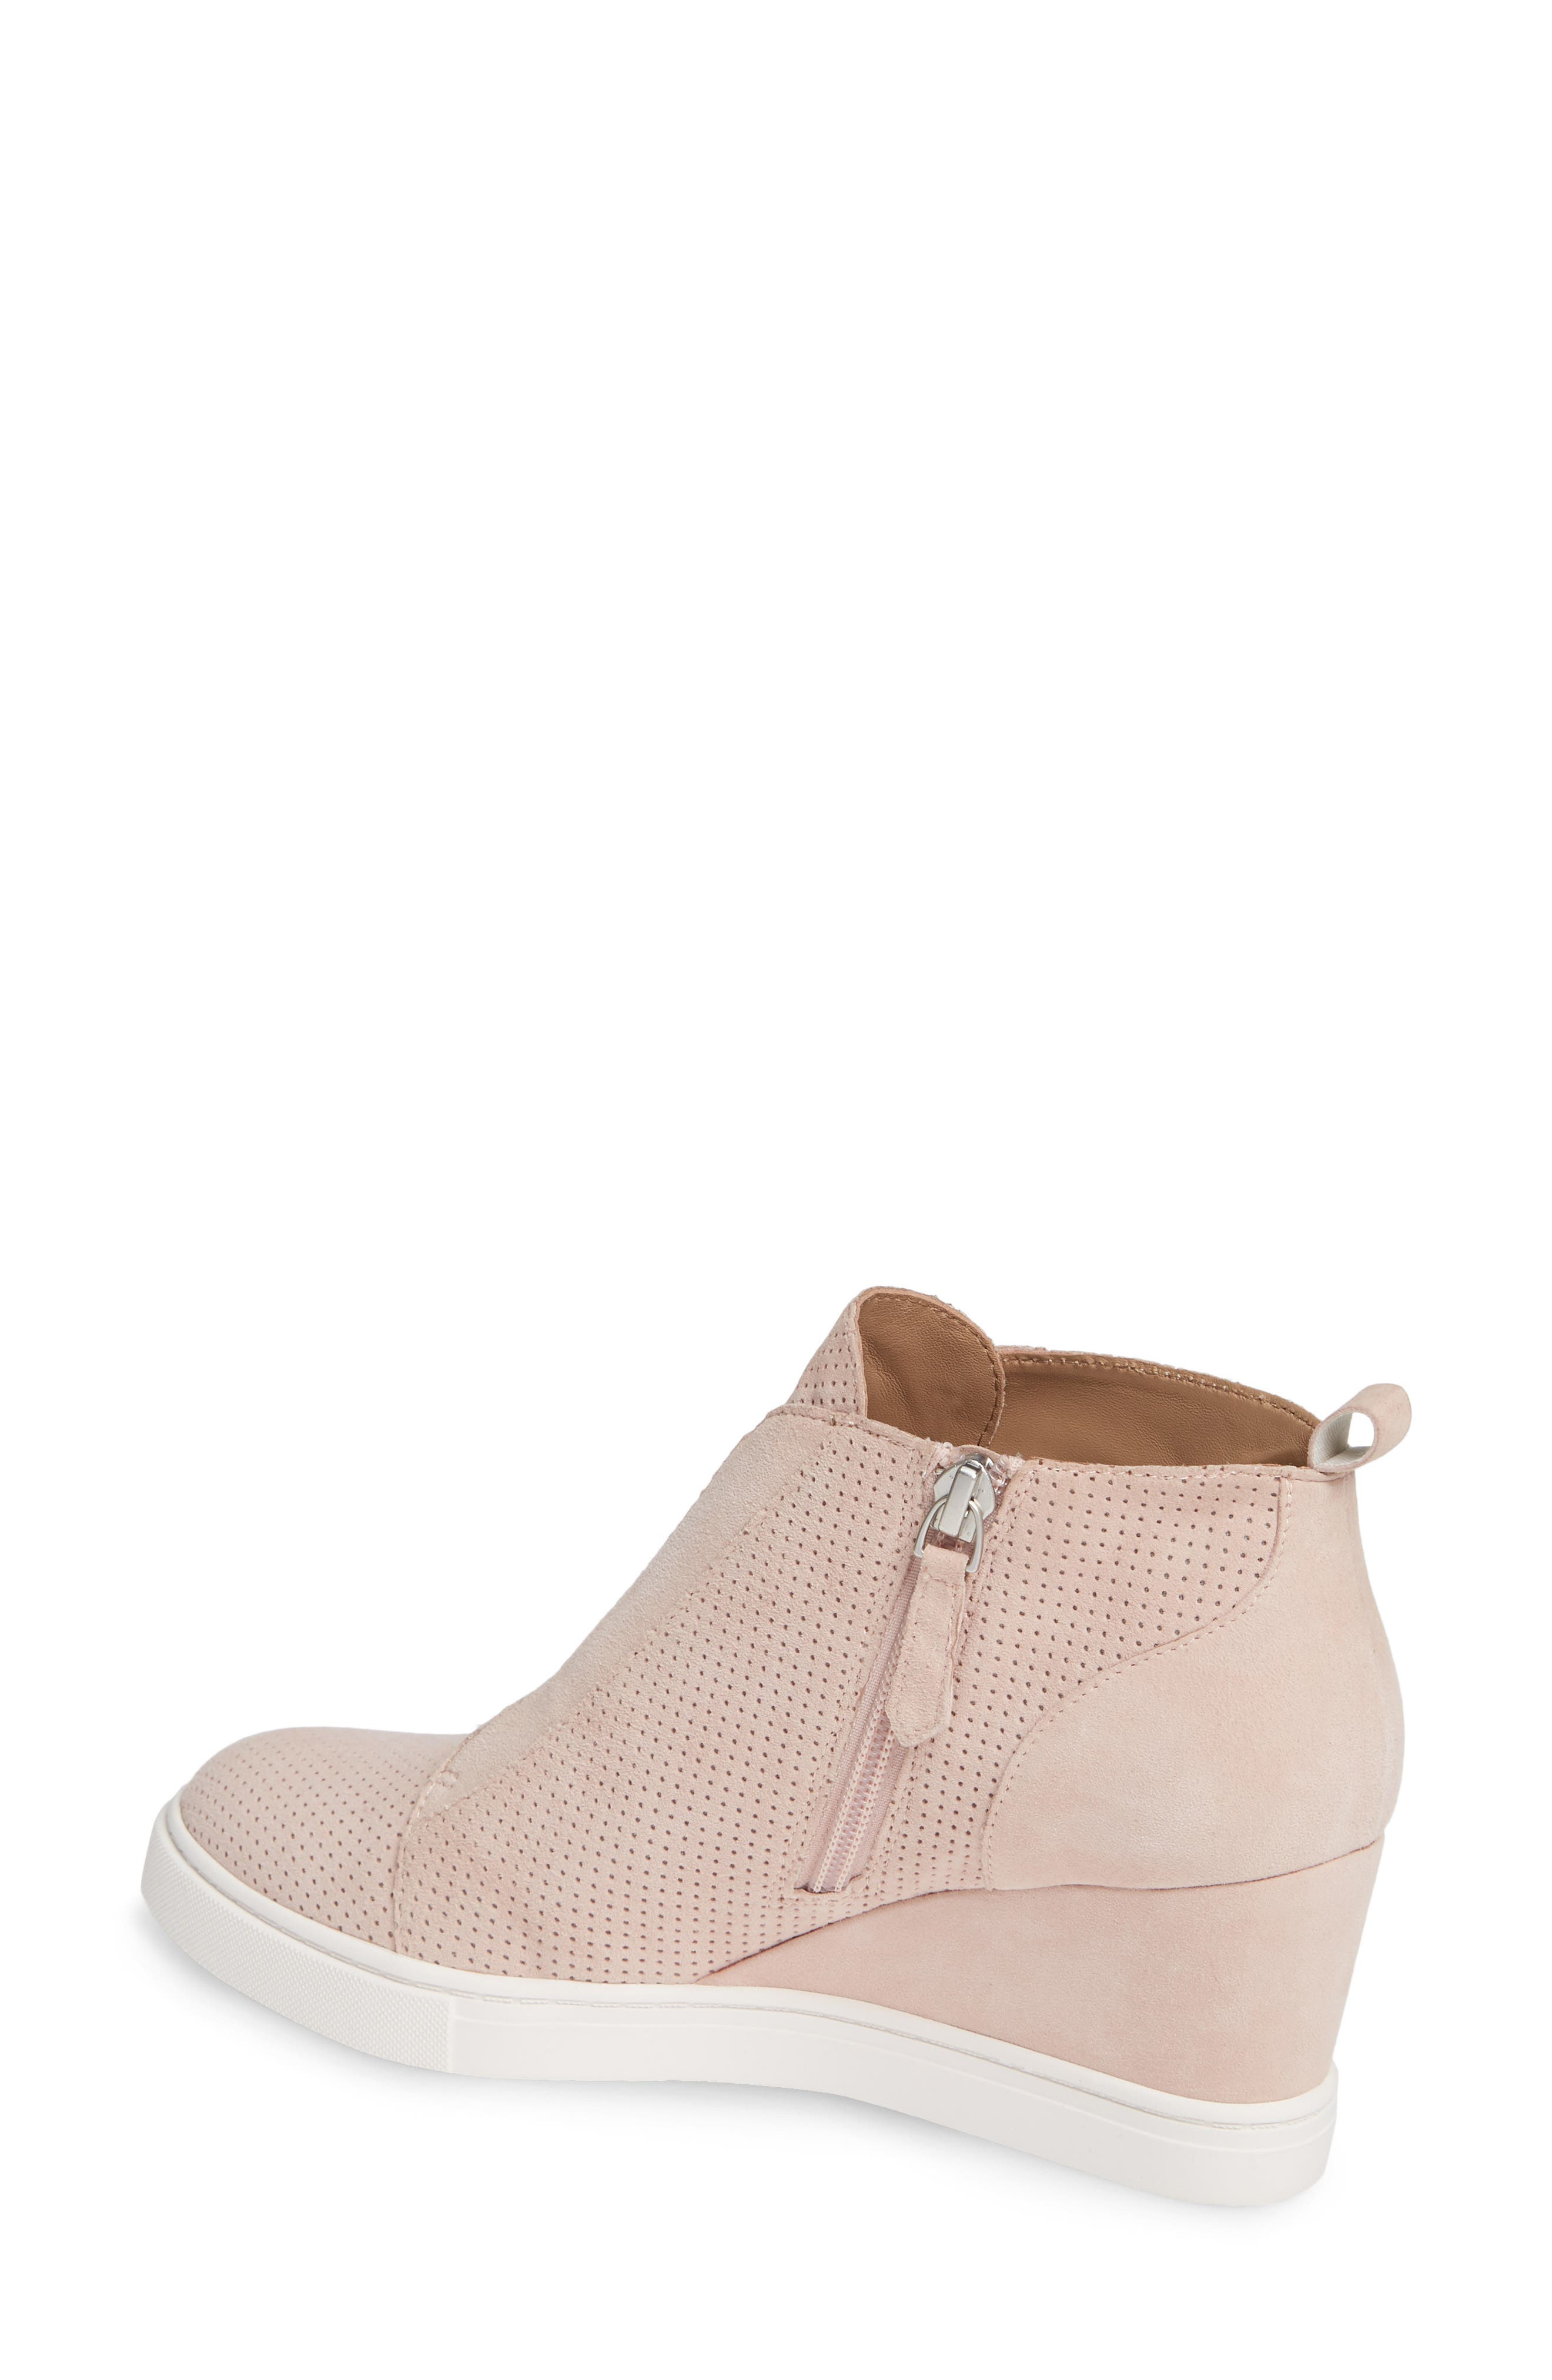 LINEA PAOLO, Felicia Wedge Bootie, Alternate thumbnail 2, color, BLUSH PERFORATED SUEDE